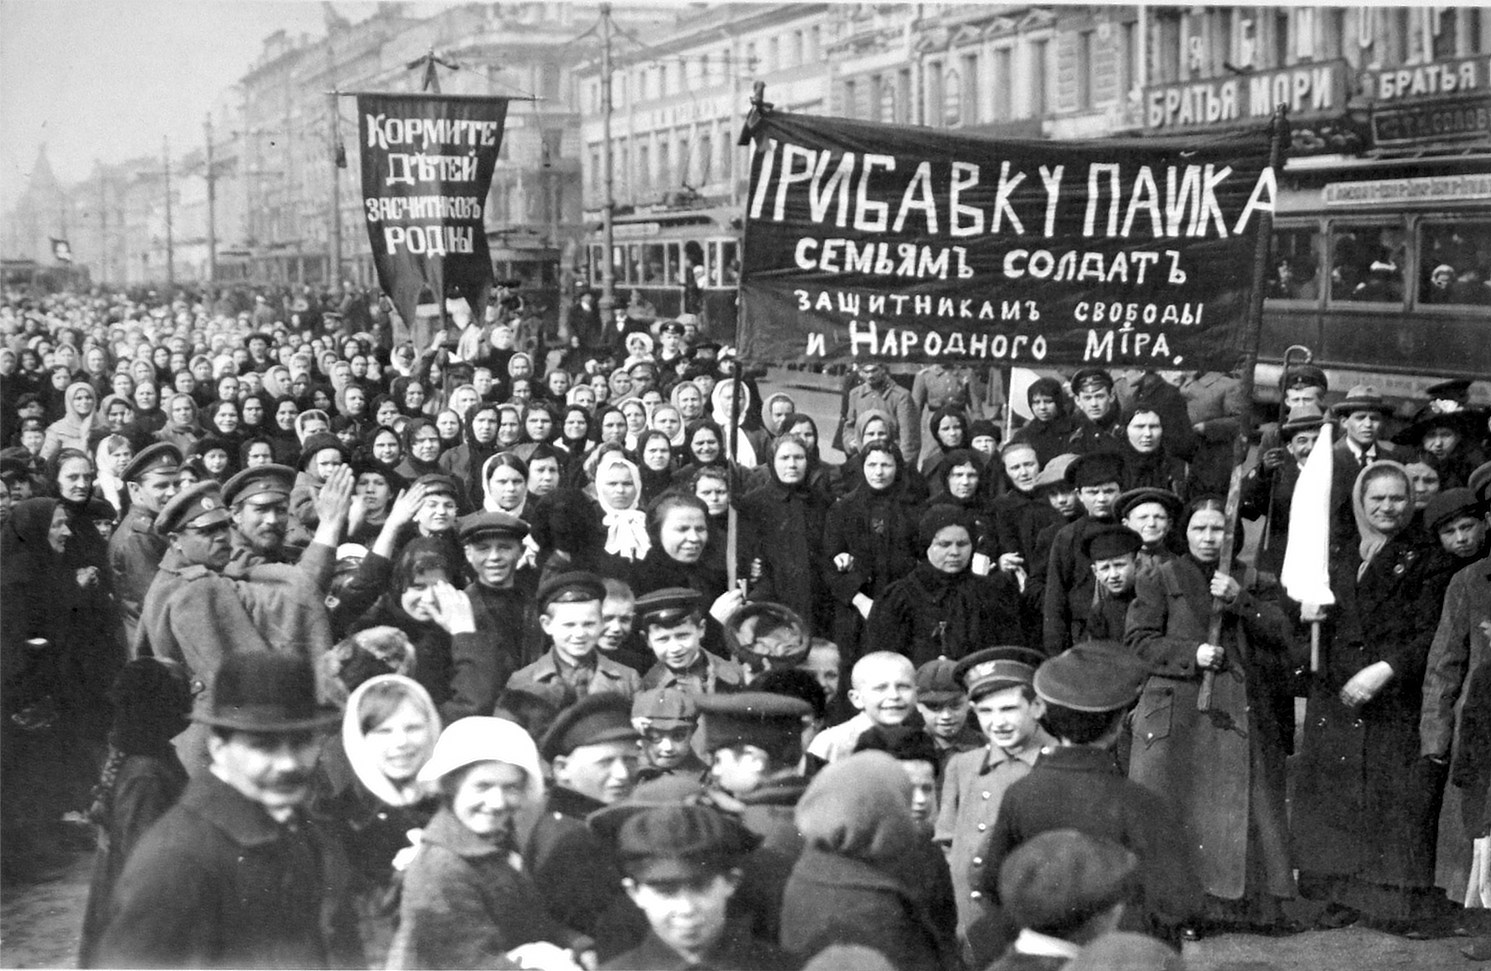 the history of russian revolutions of 1917 By issy defillion a century has passed since the russian revolutions of 1917, a century in which historians have reflected on its consequences for the politics and peoples of russia and the world, and on the legacy it still holds today.